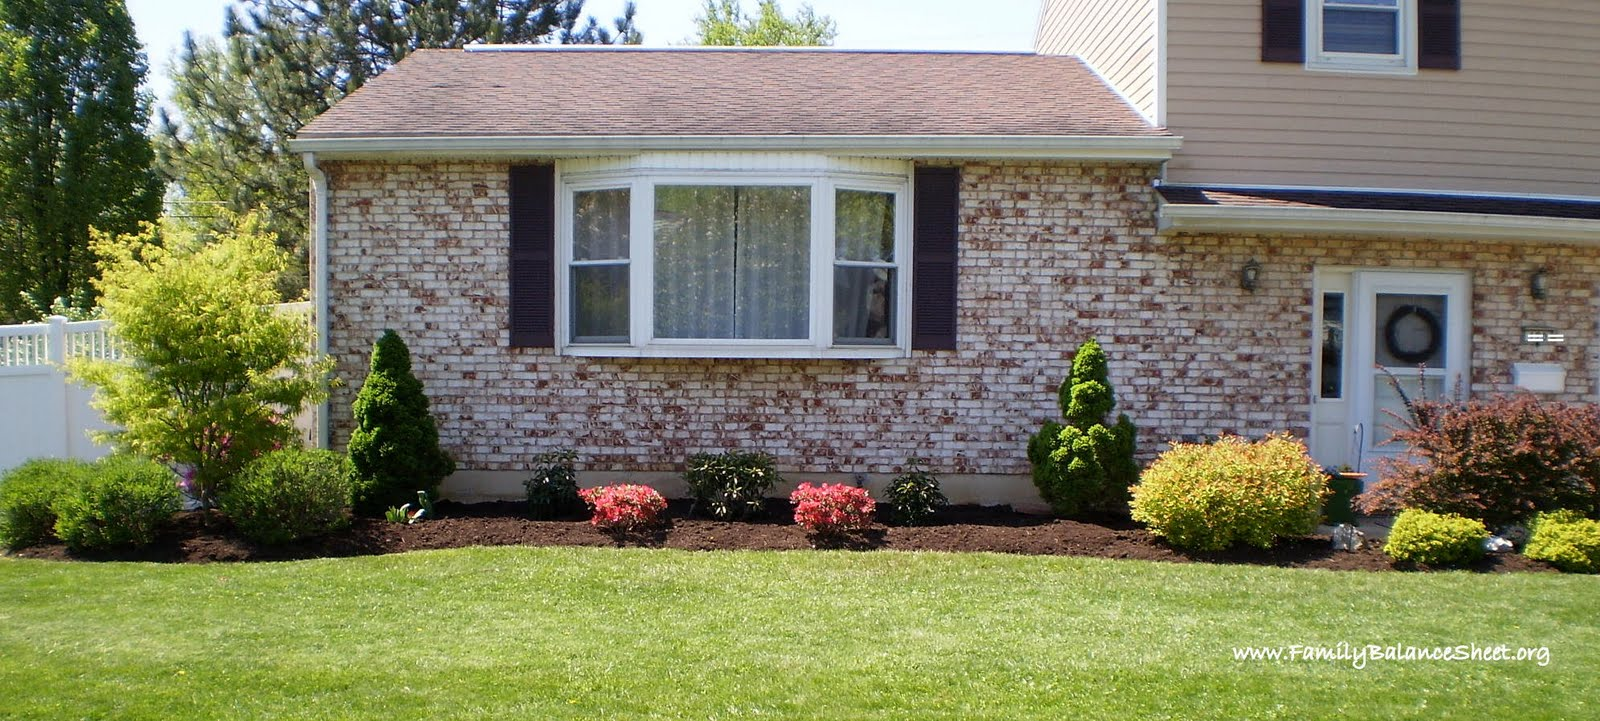 15 tips to help you design your front yard save money too for Garden lawn ideas